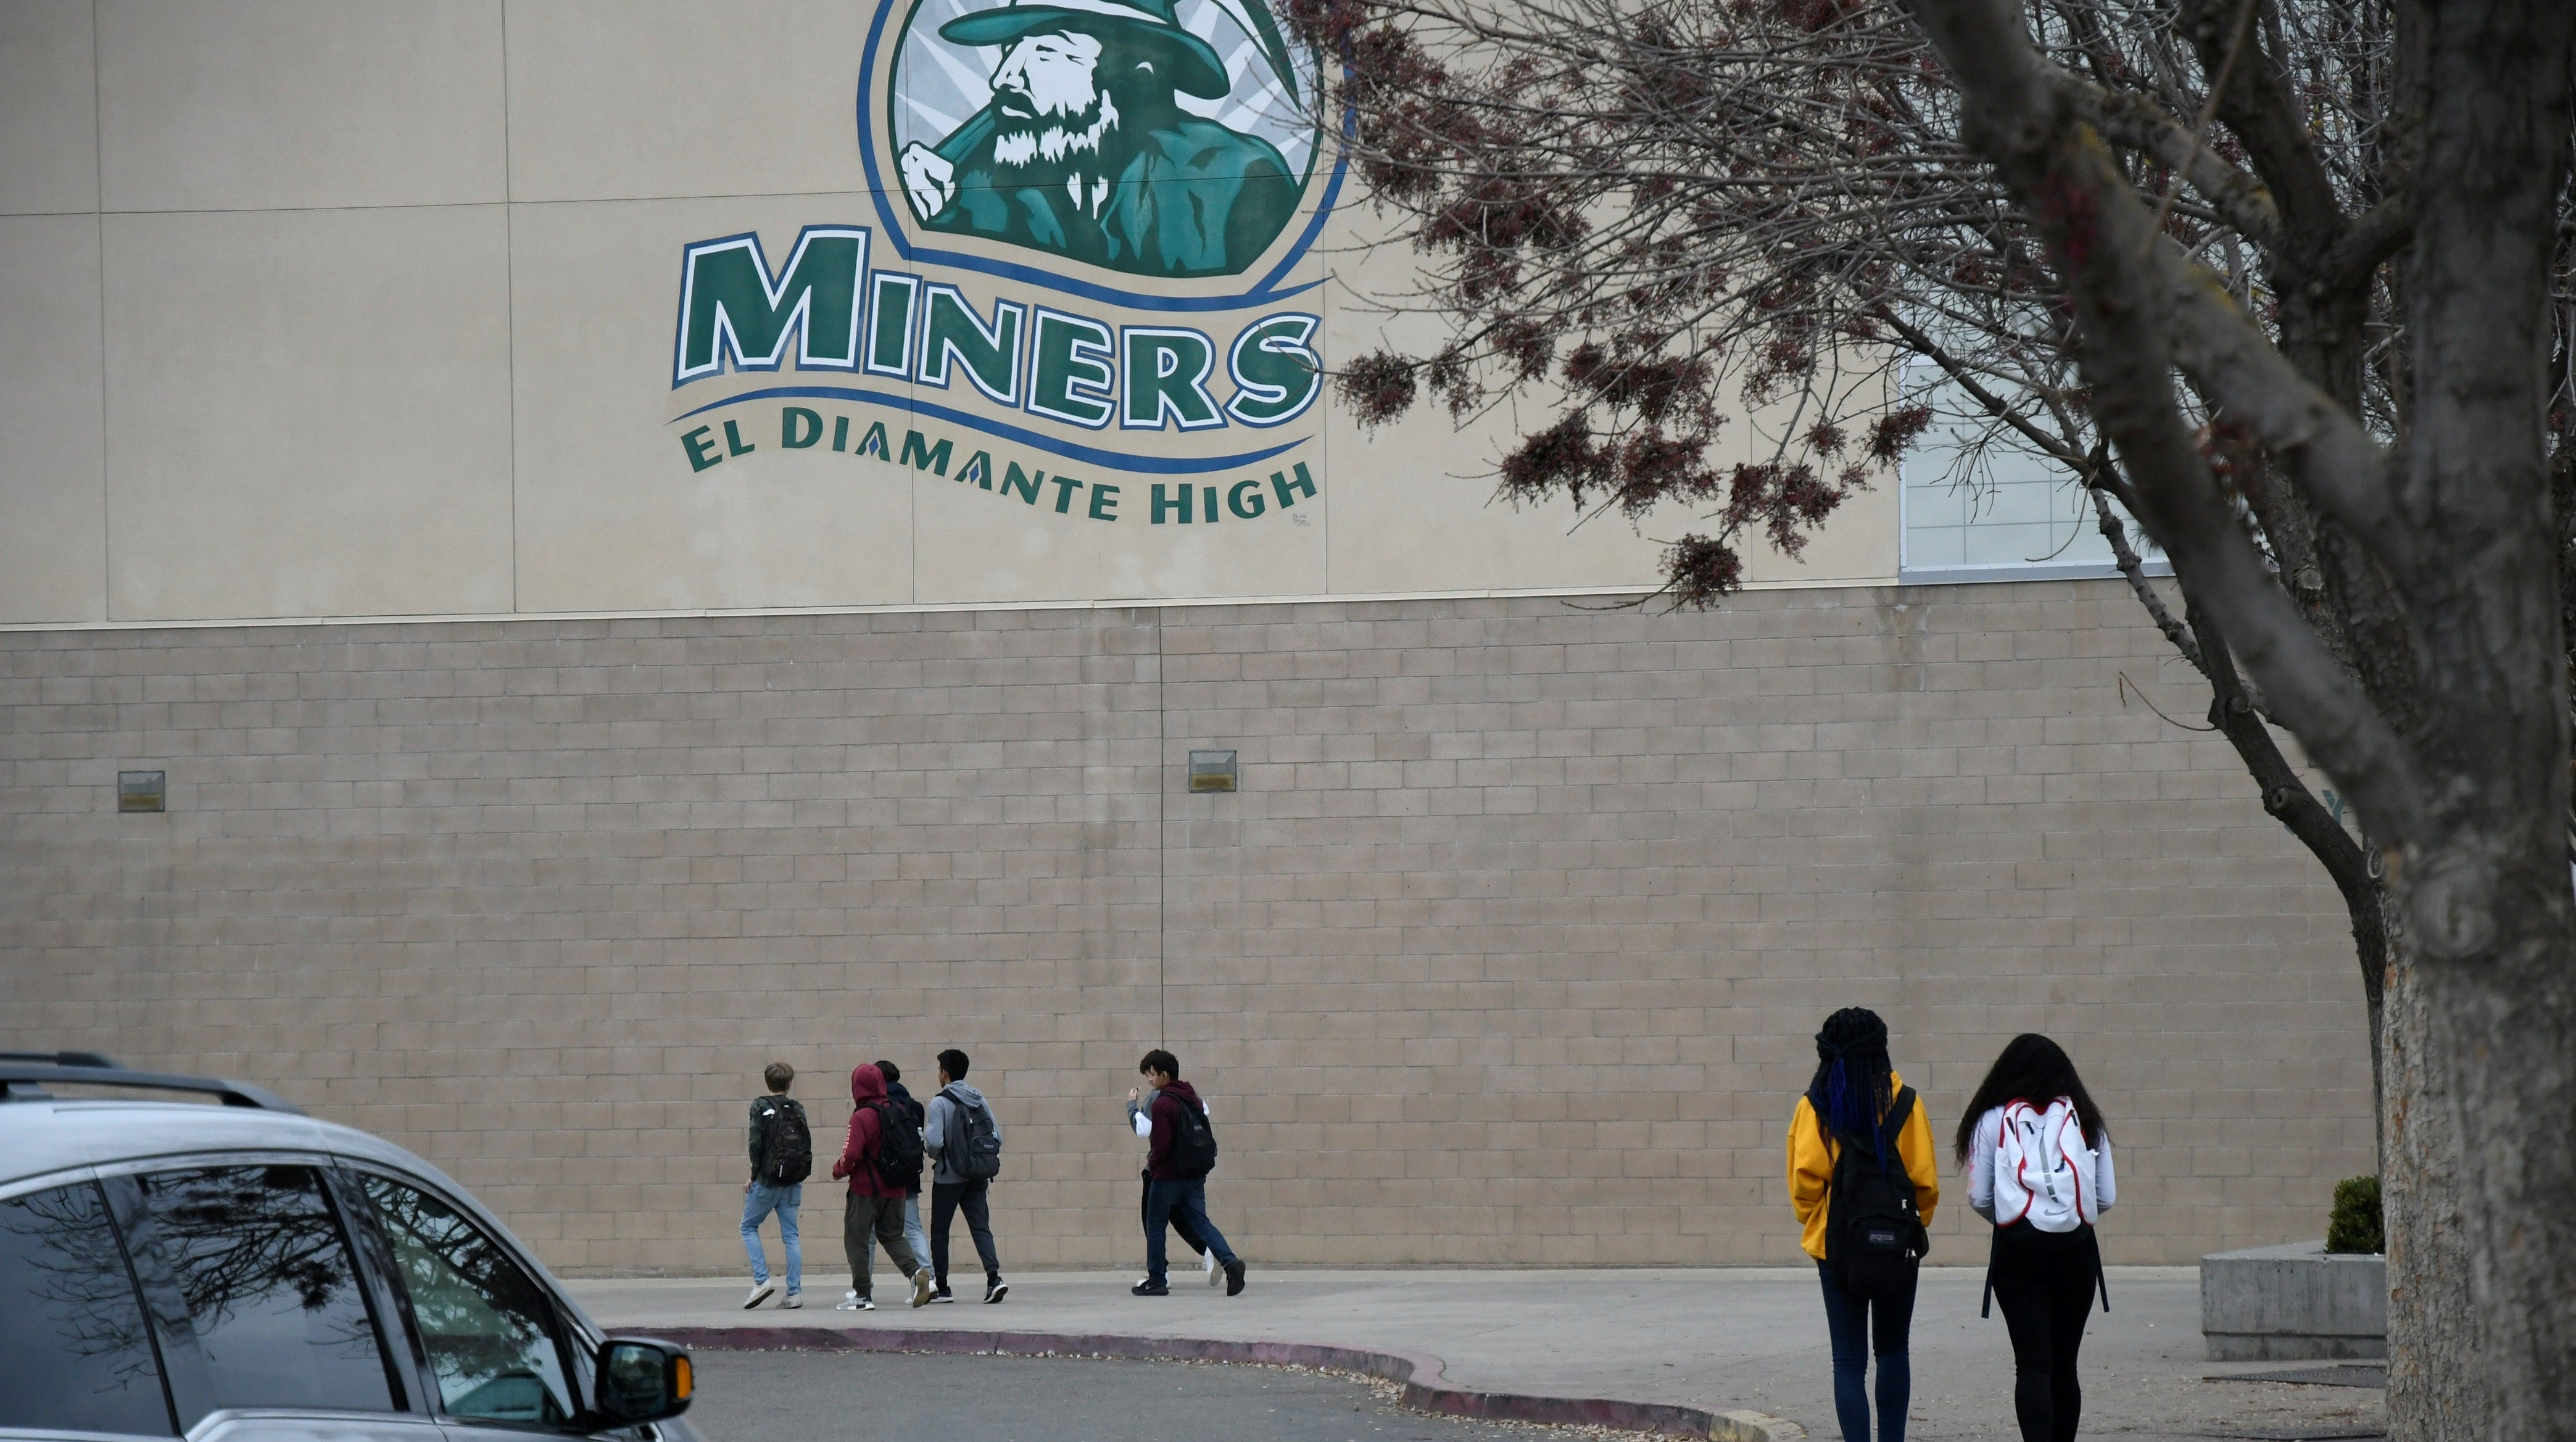 El Diamante High School is one of several schools targeted by the ACLU after students claim rampant racism on campus.